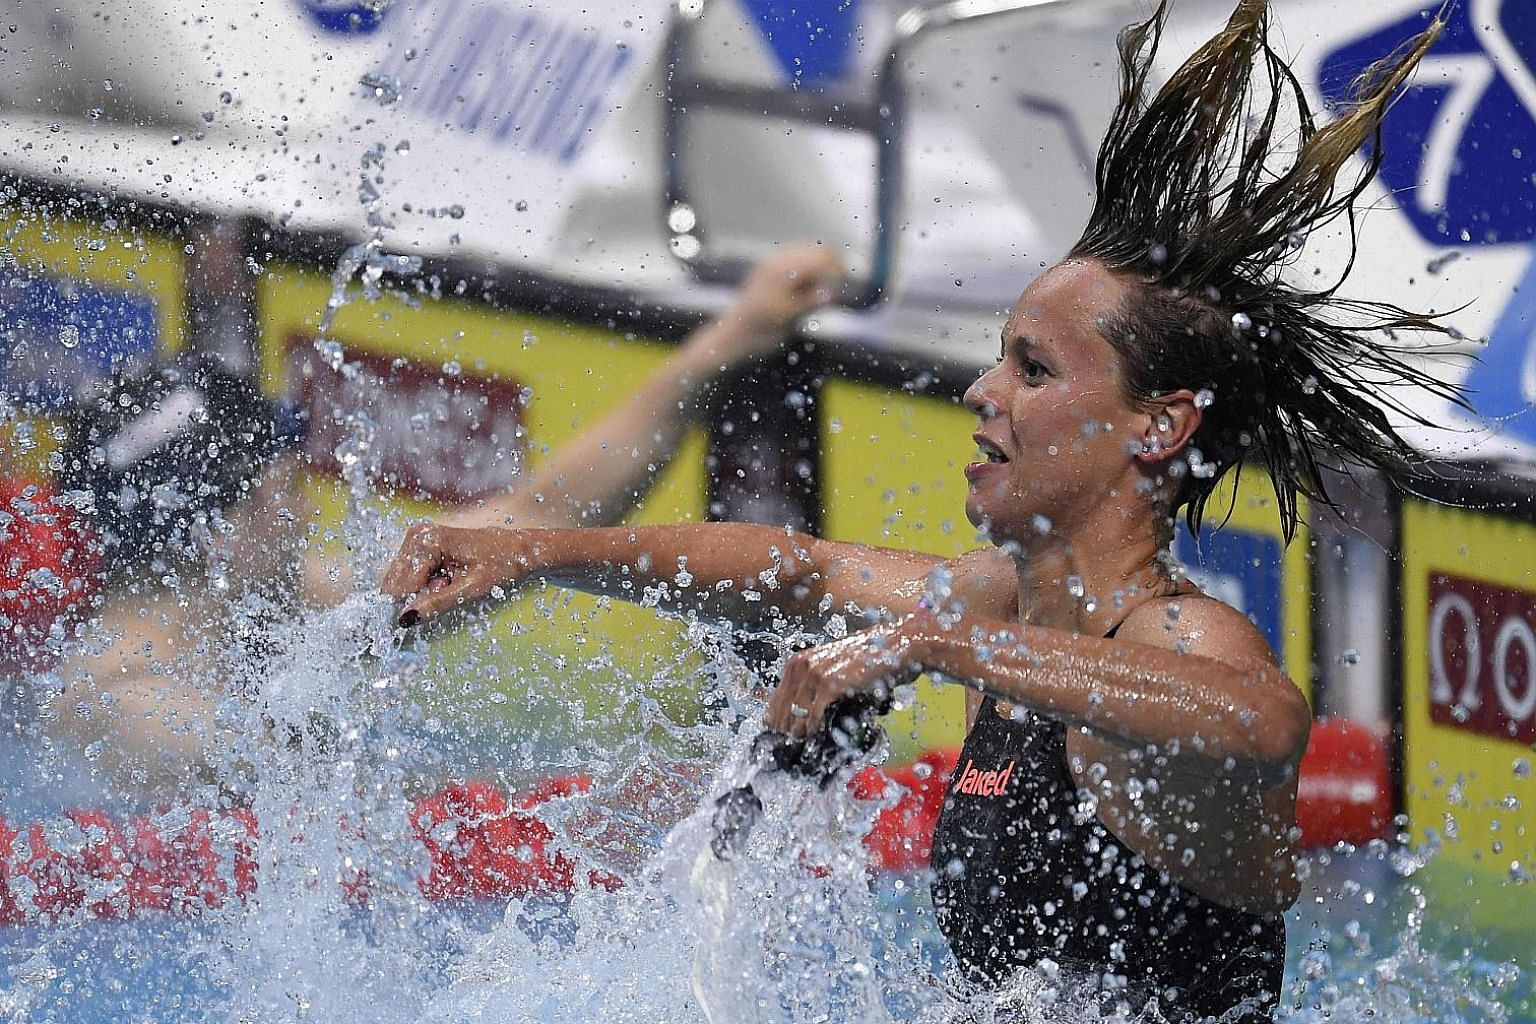 Italy's Federica Pellegrini celebrates after winning the women's 200m freestyle final at the world championships in Budapest.